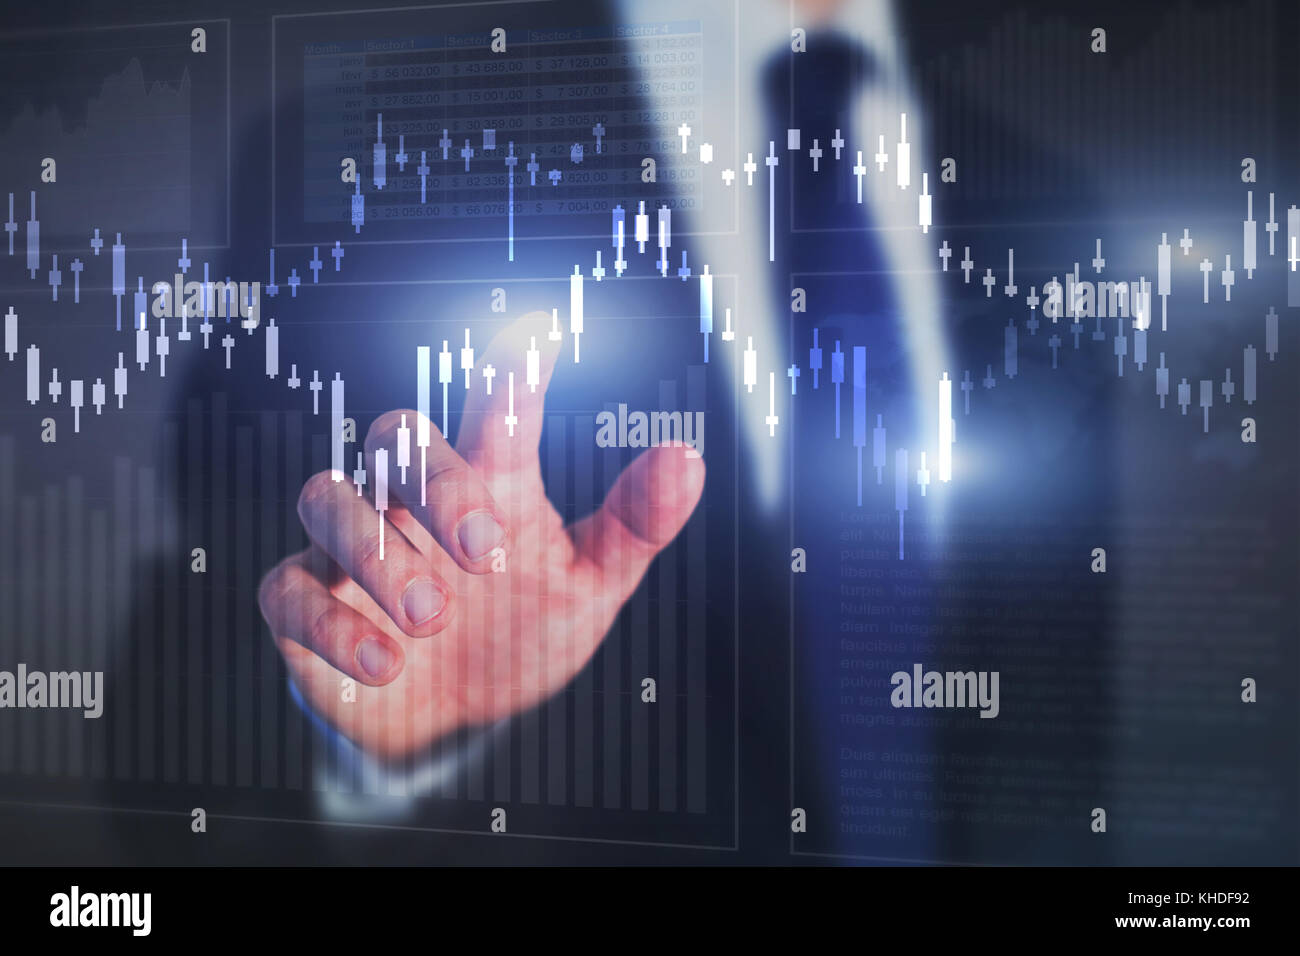 financial graphics and charts background, stock market concept, investor analyzing digital data - Stock Image